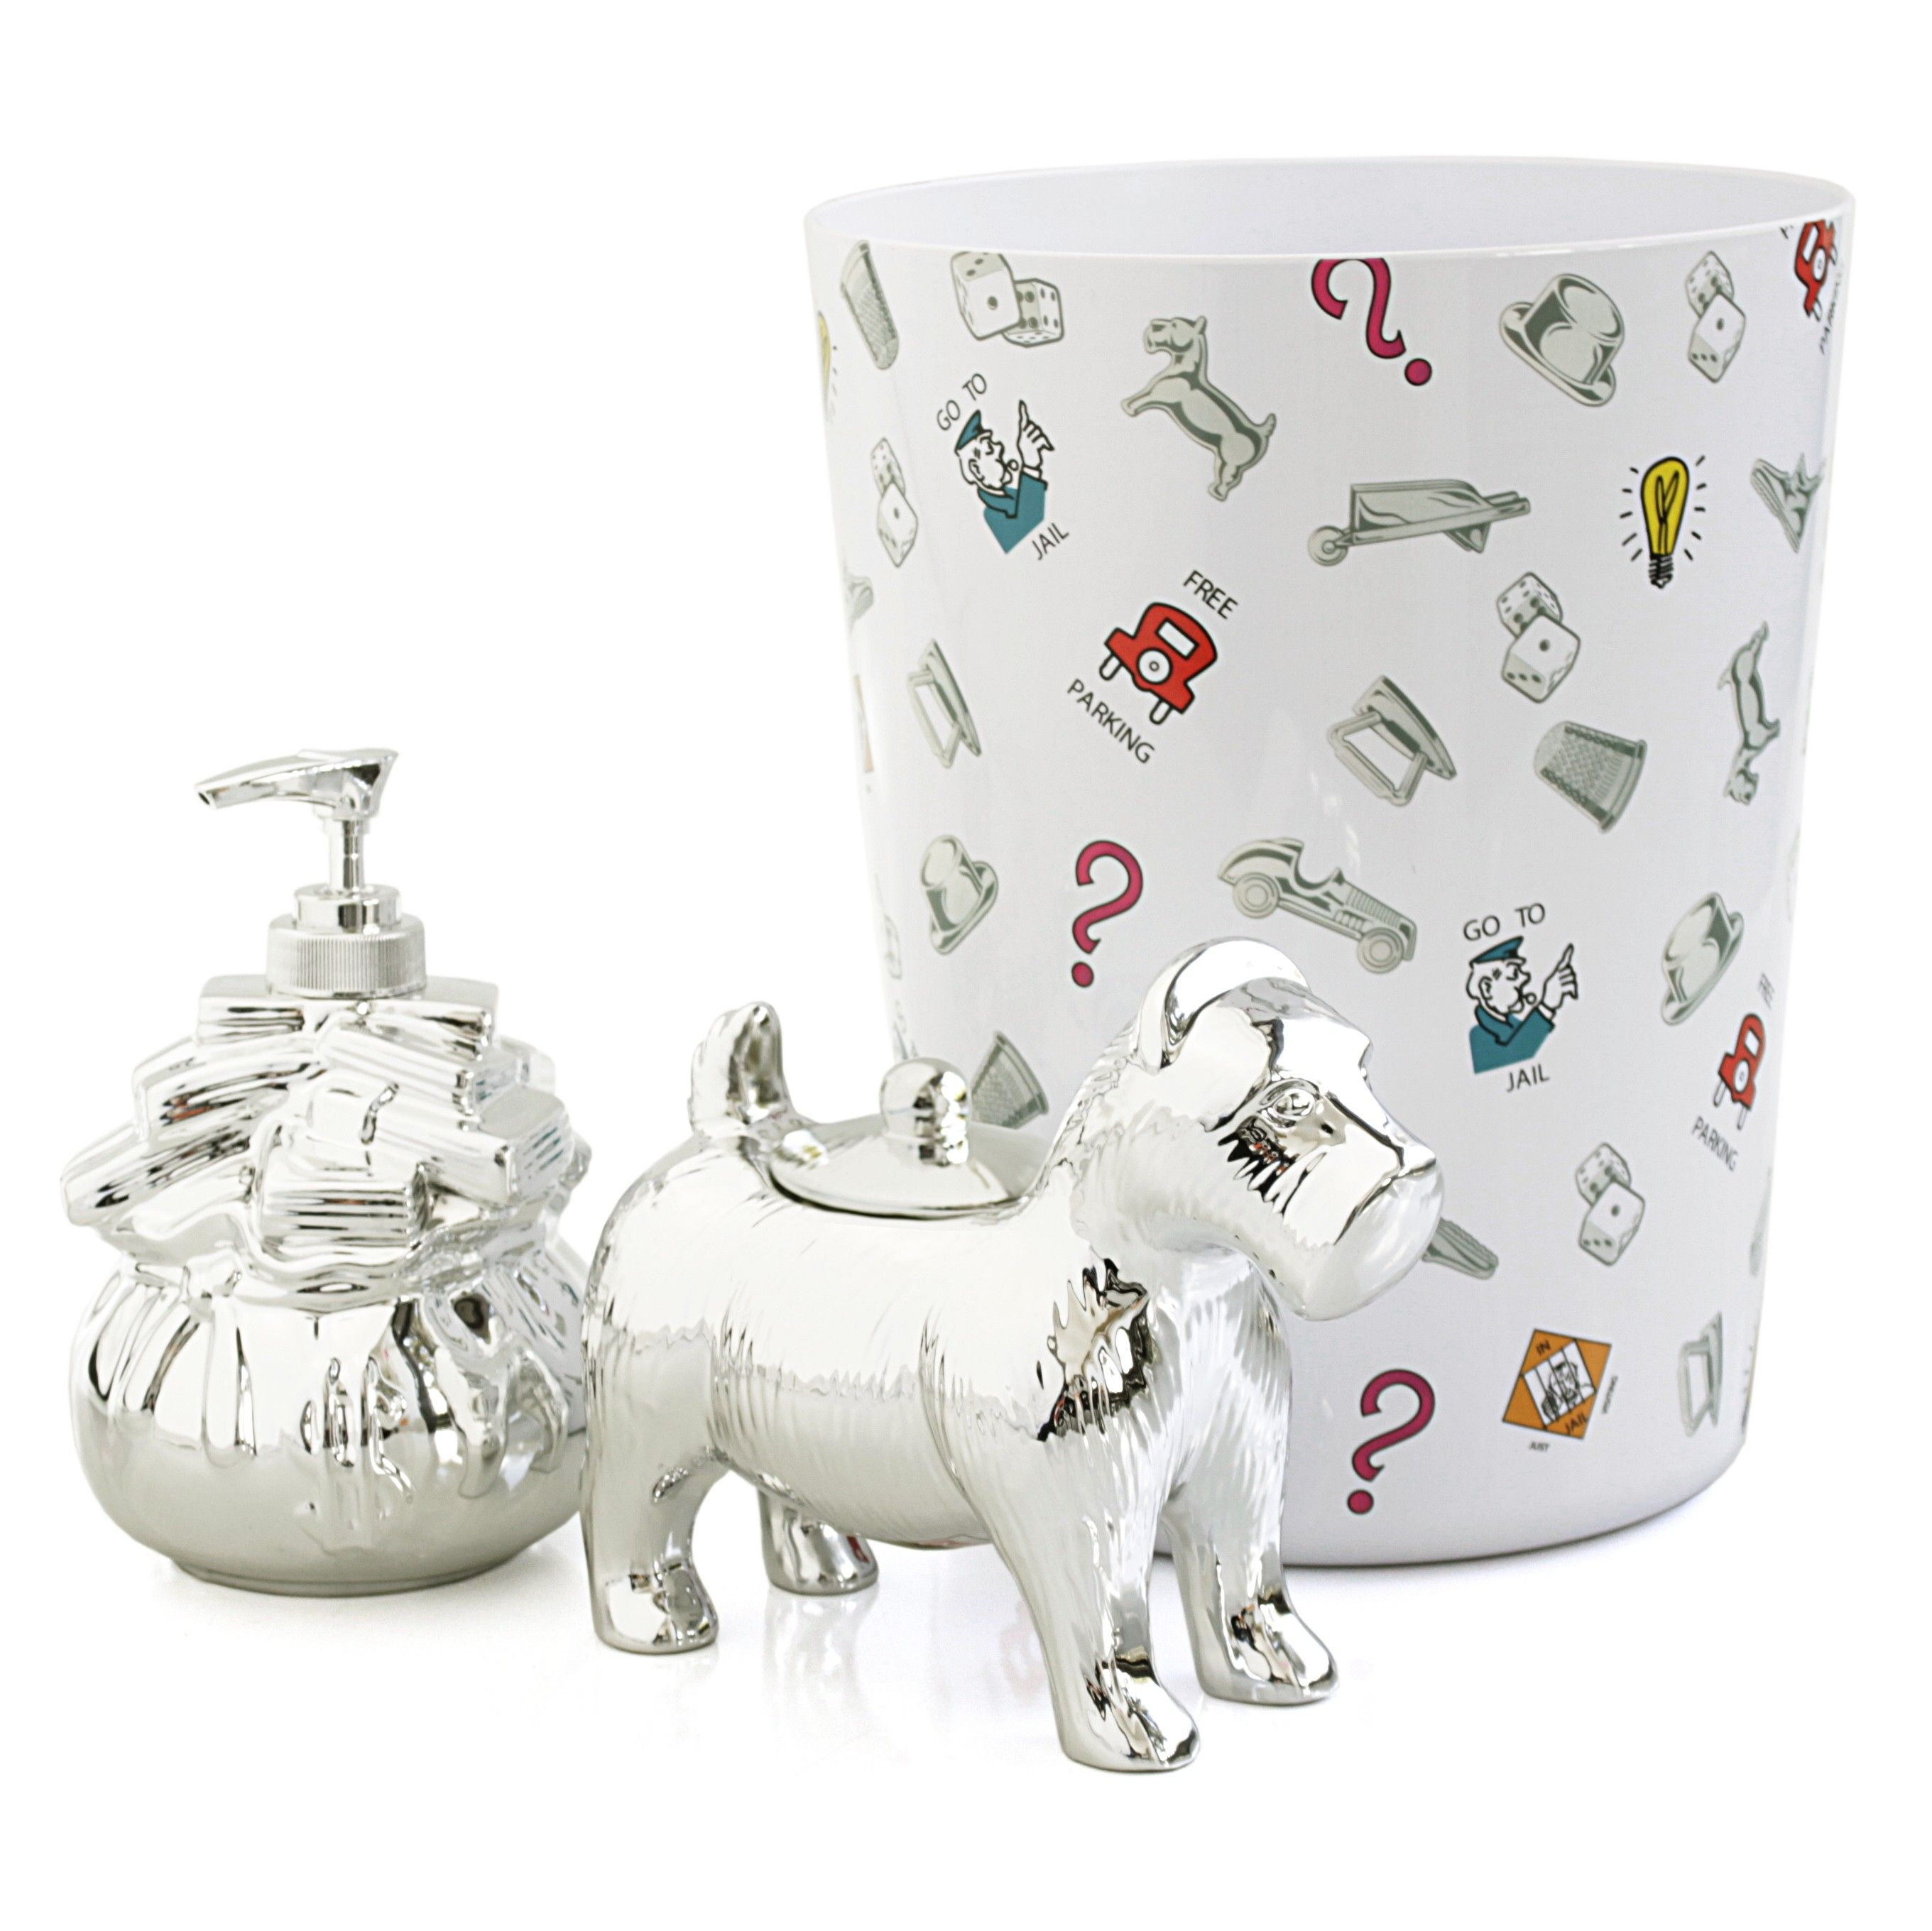 Retro Monopoly 3 Piece Bathroom Accessory Set From Bigkitchen 35